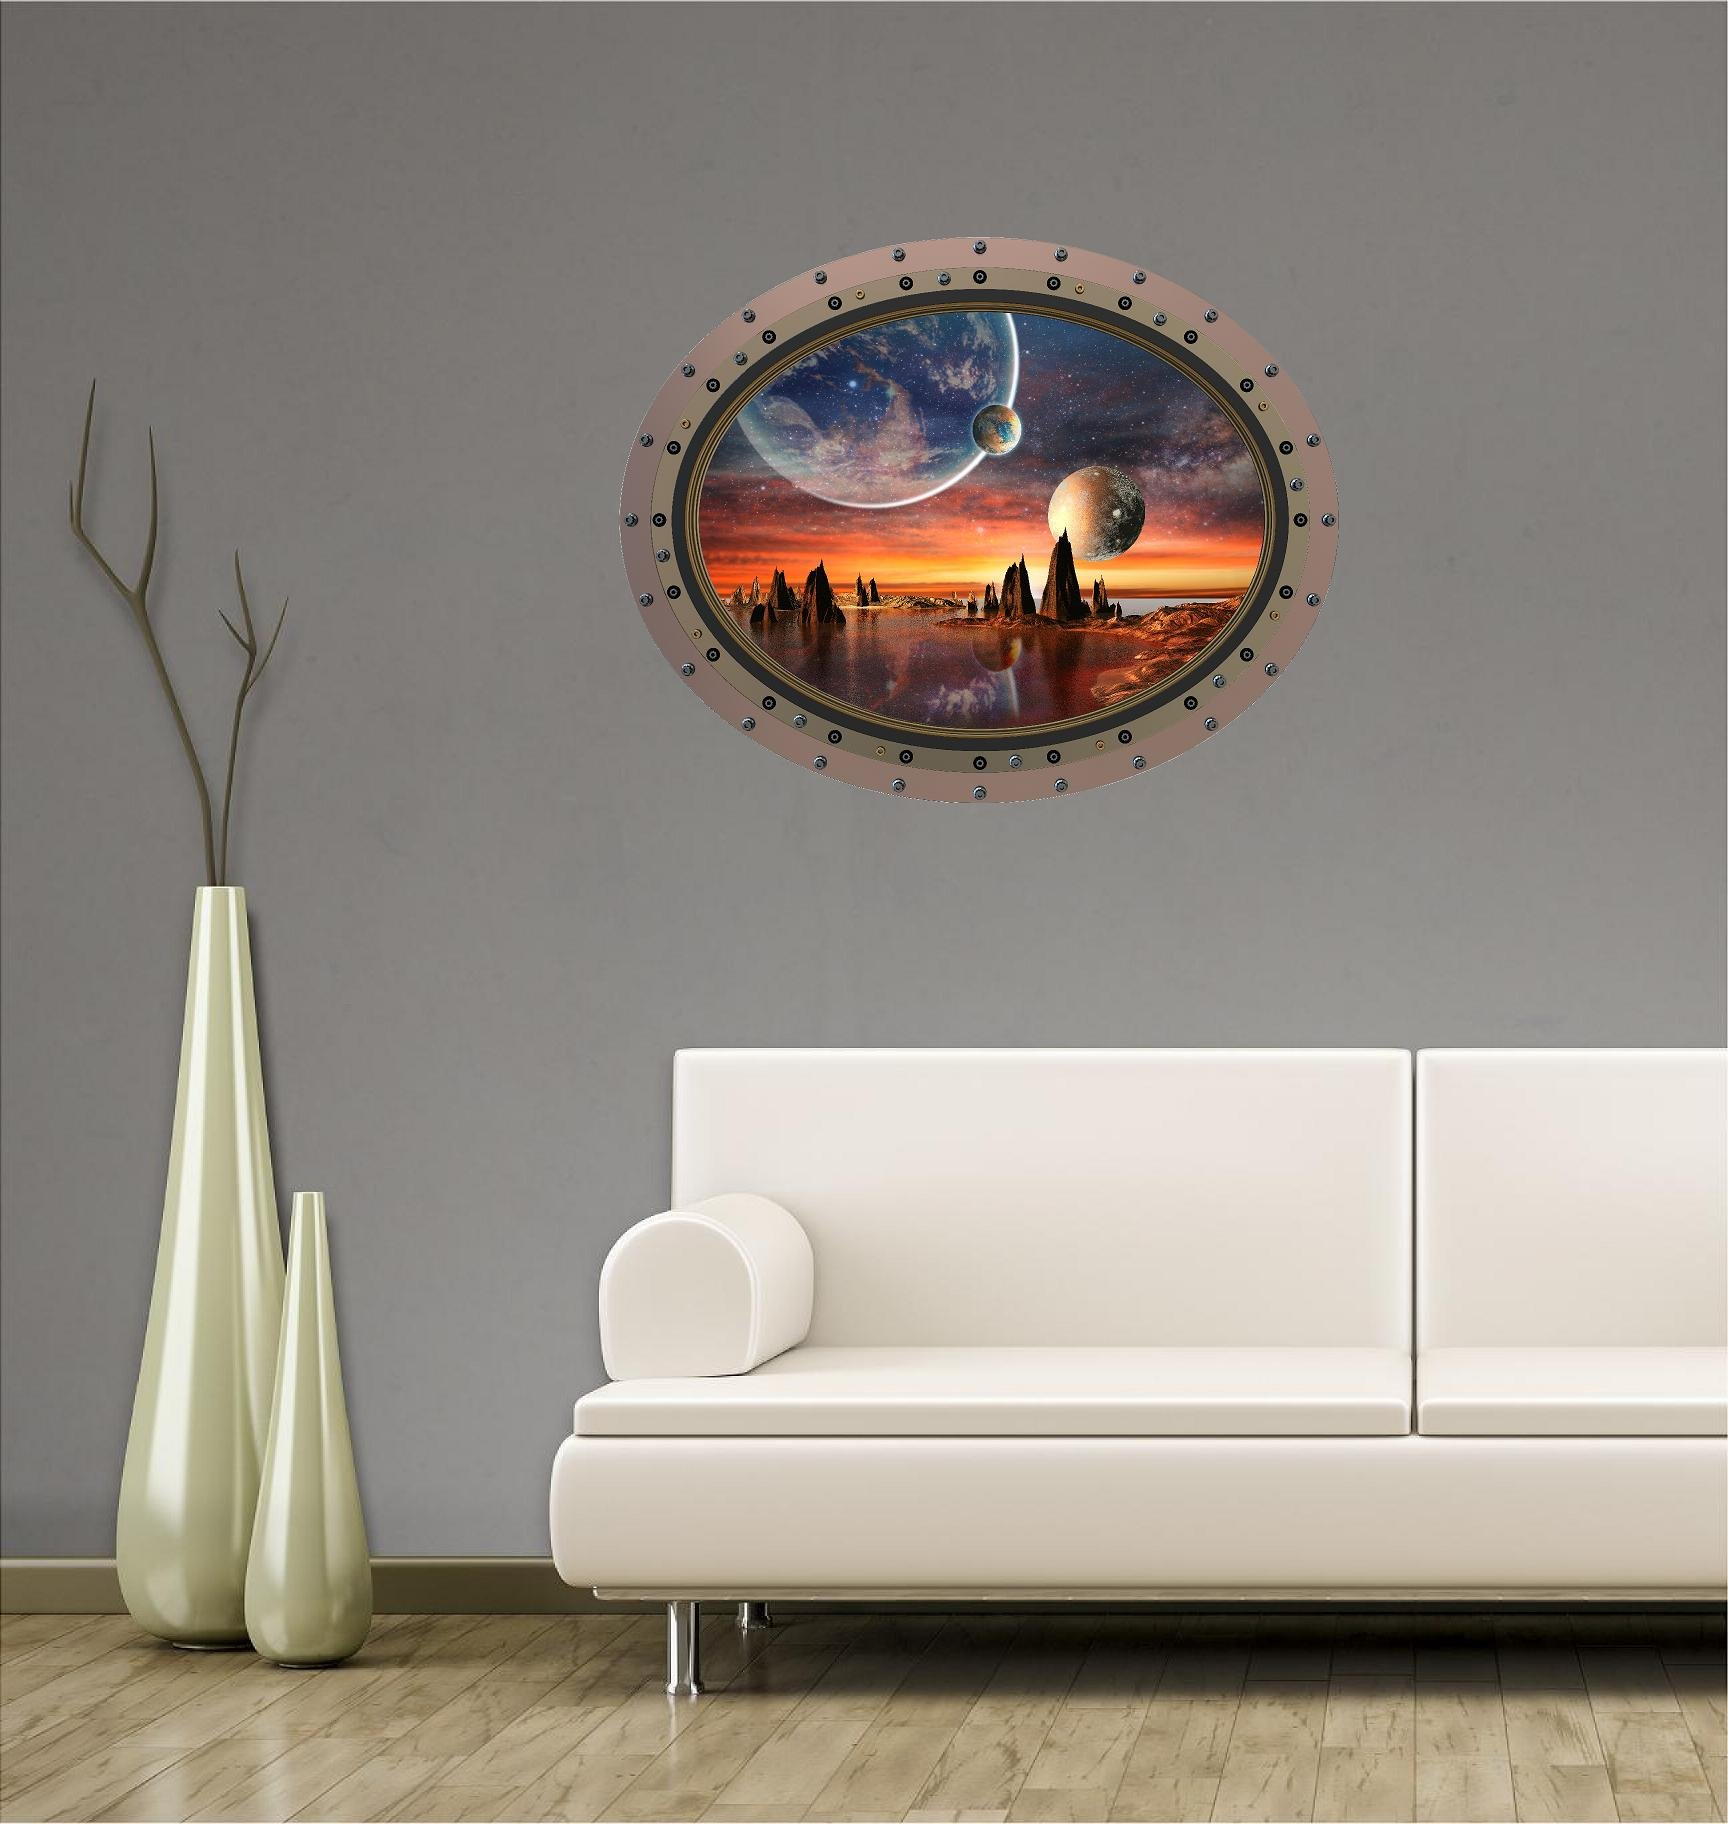 36'' Porthole Outer Space Ship Window View ALIEN PLANET #3 OVAL RIVETS Wall Sticker Kids Decal Baby Room Home Art Décor Den Mural Man Cave Graphic LARGE